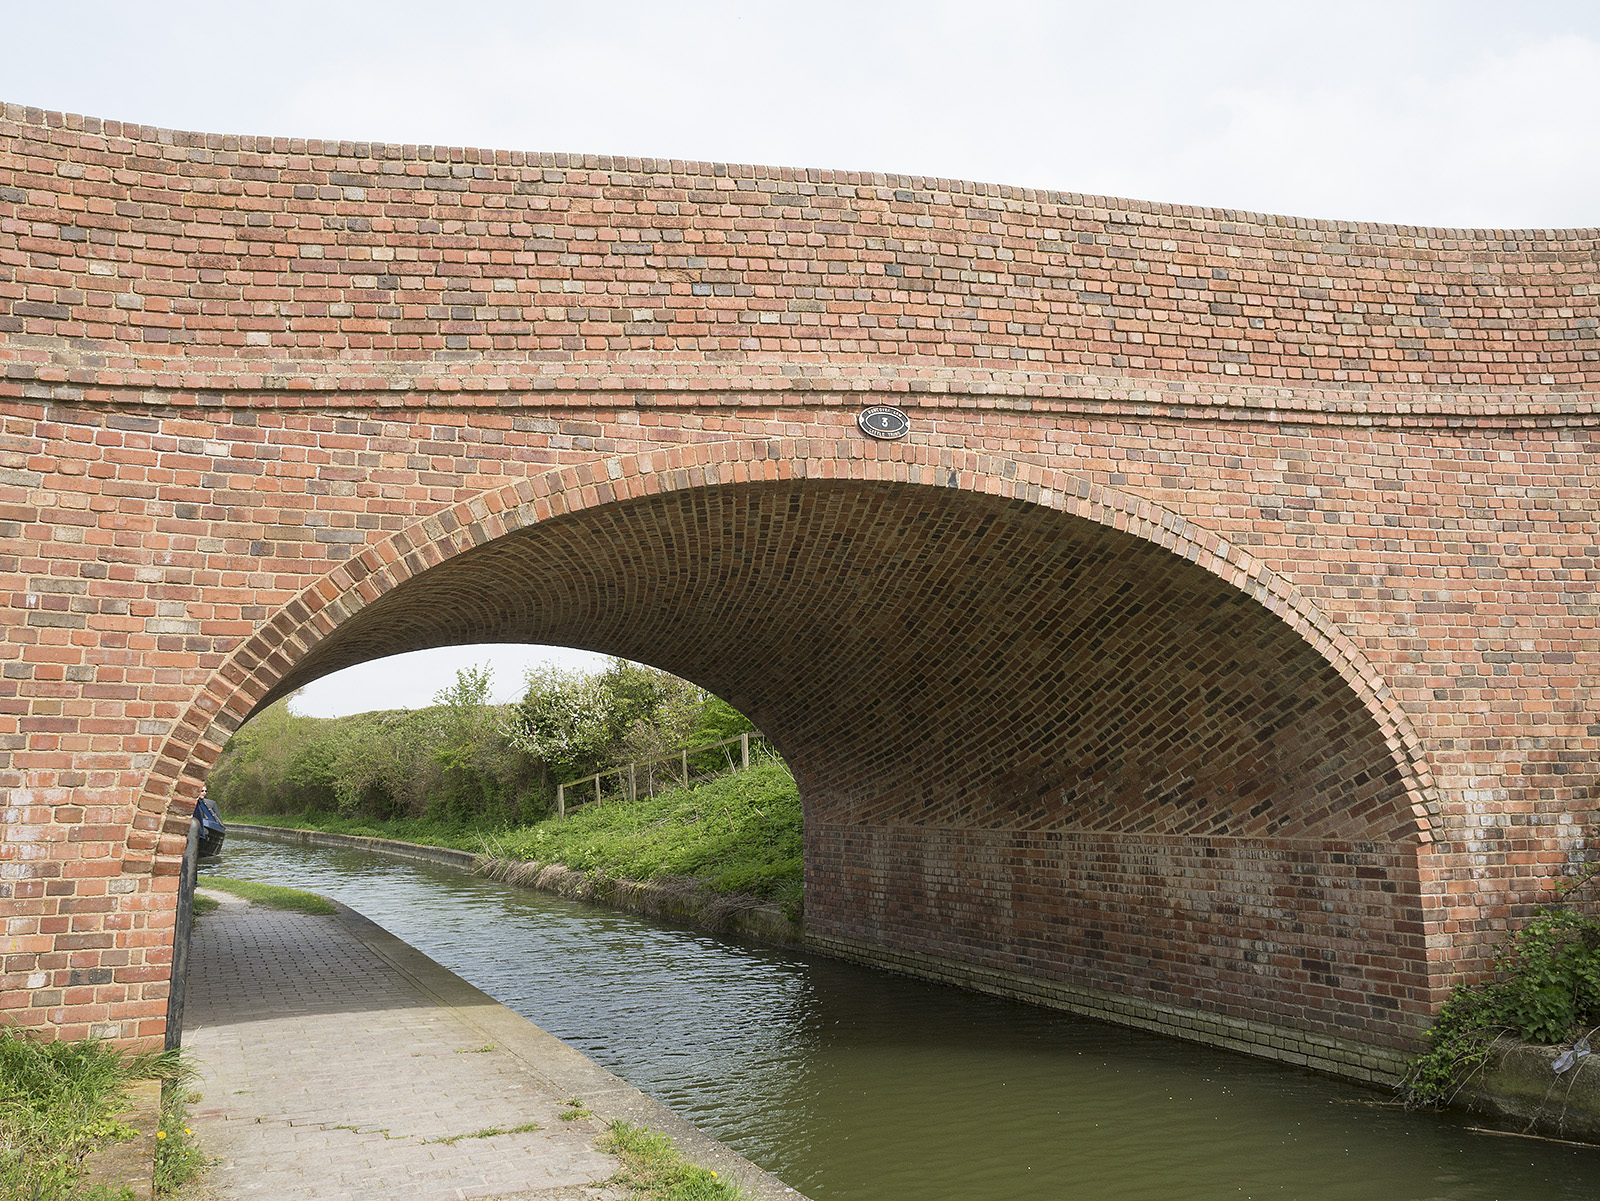 Another view of Little Tring bridge number 3 (award winning)